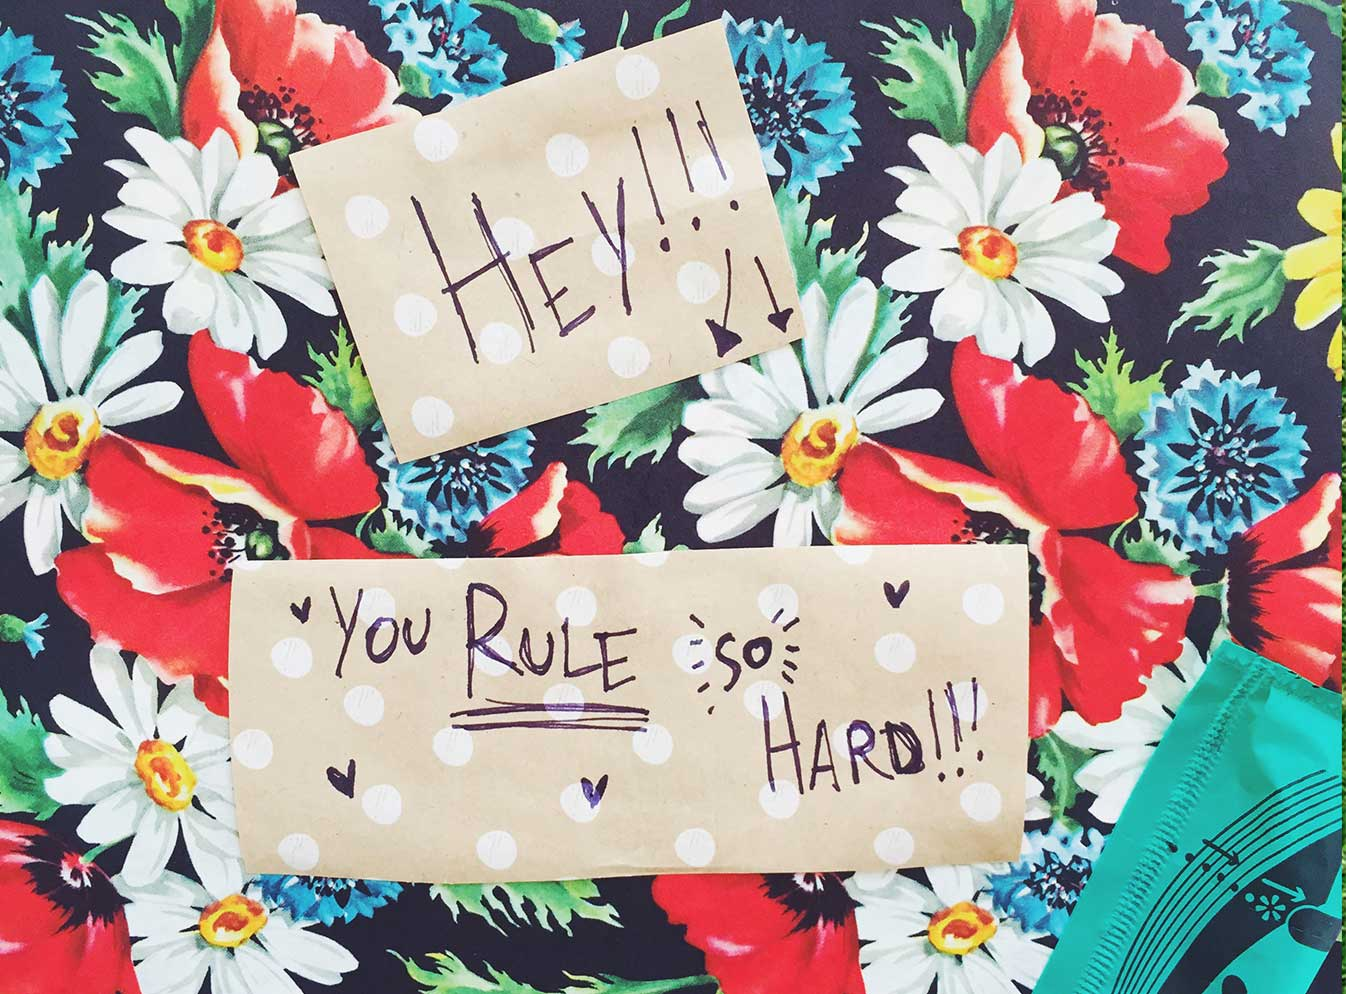 Hey!!! You Rule so Hard!!!